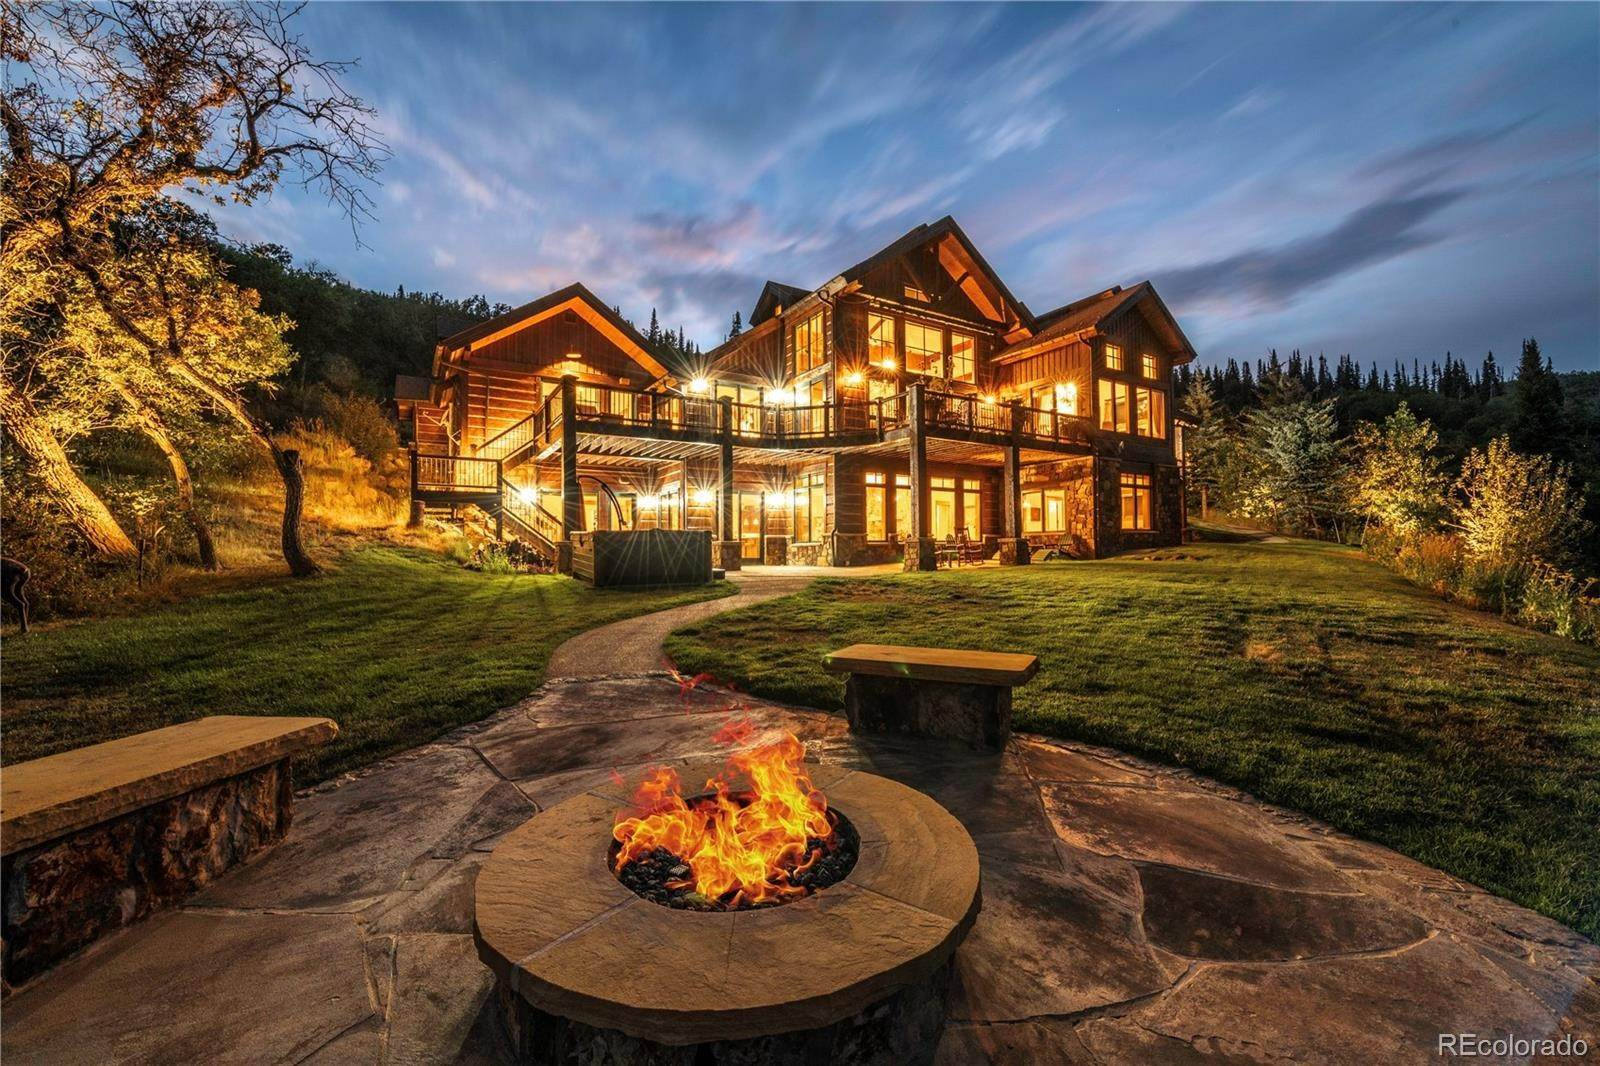 Single Family Homes for Sale at 31050 Sweetwater Drive Steamboat Springs, Colorado 80487 United States